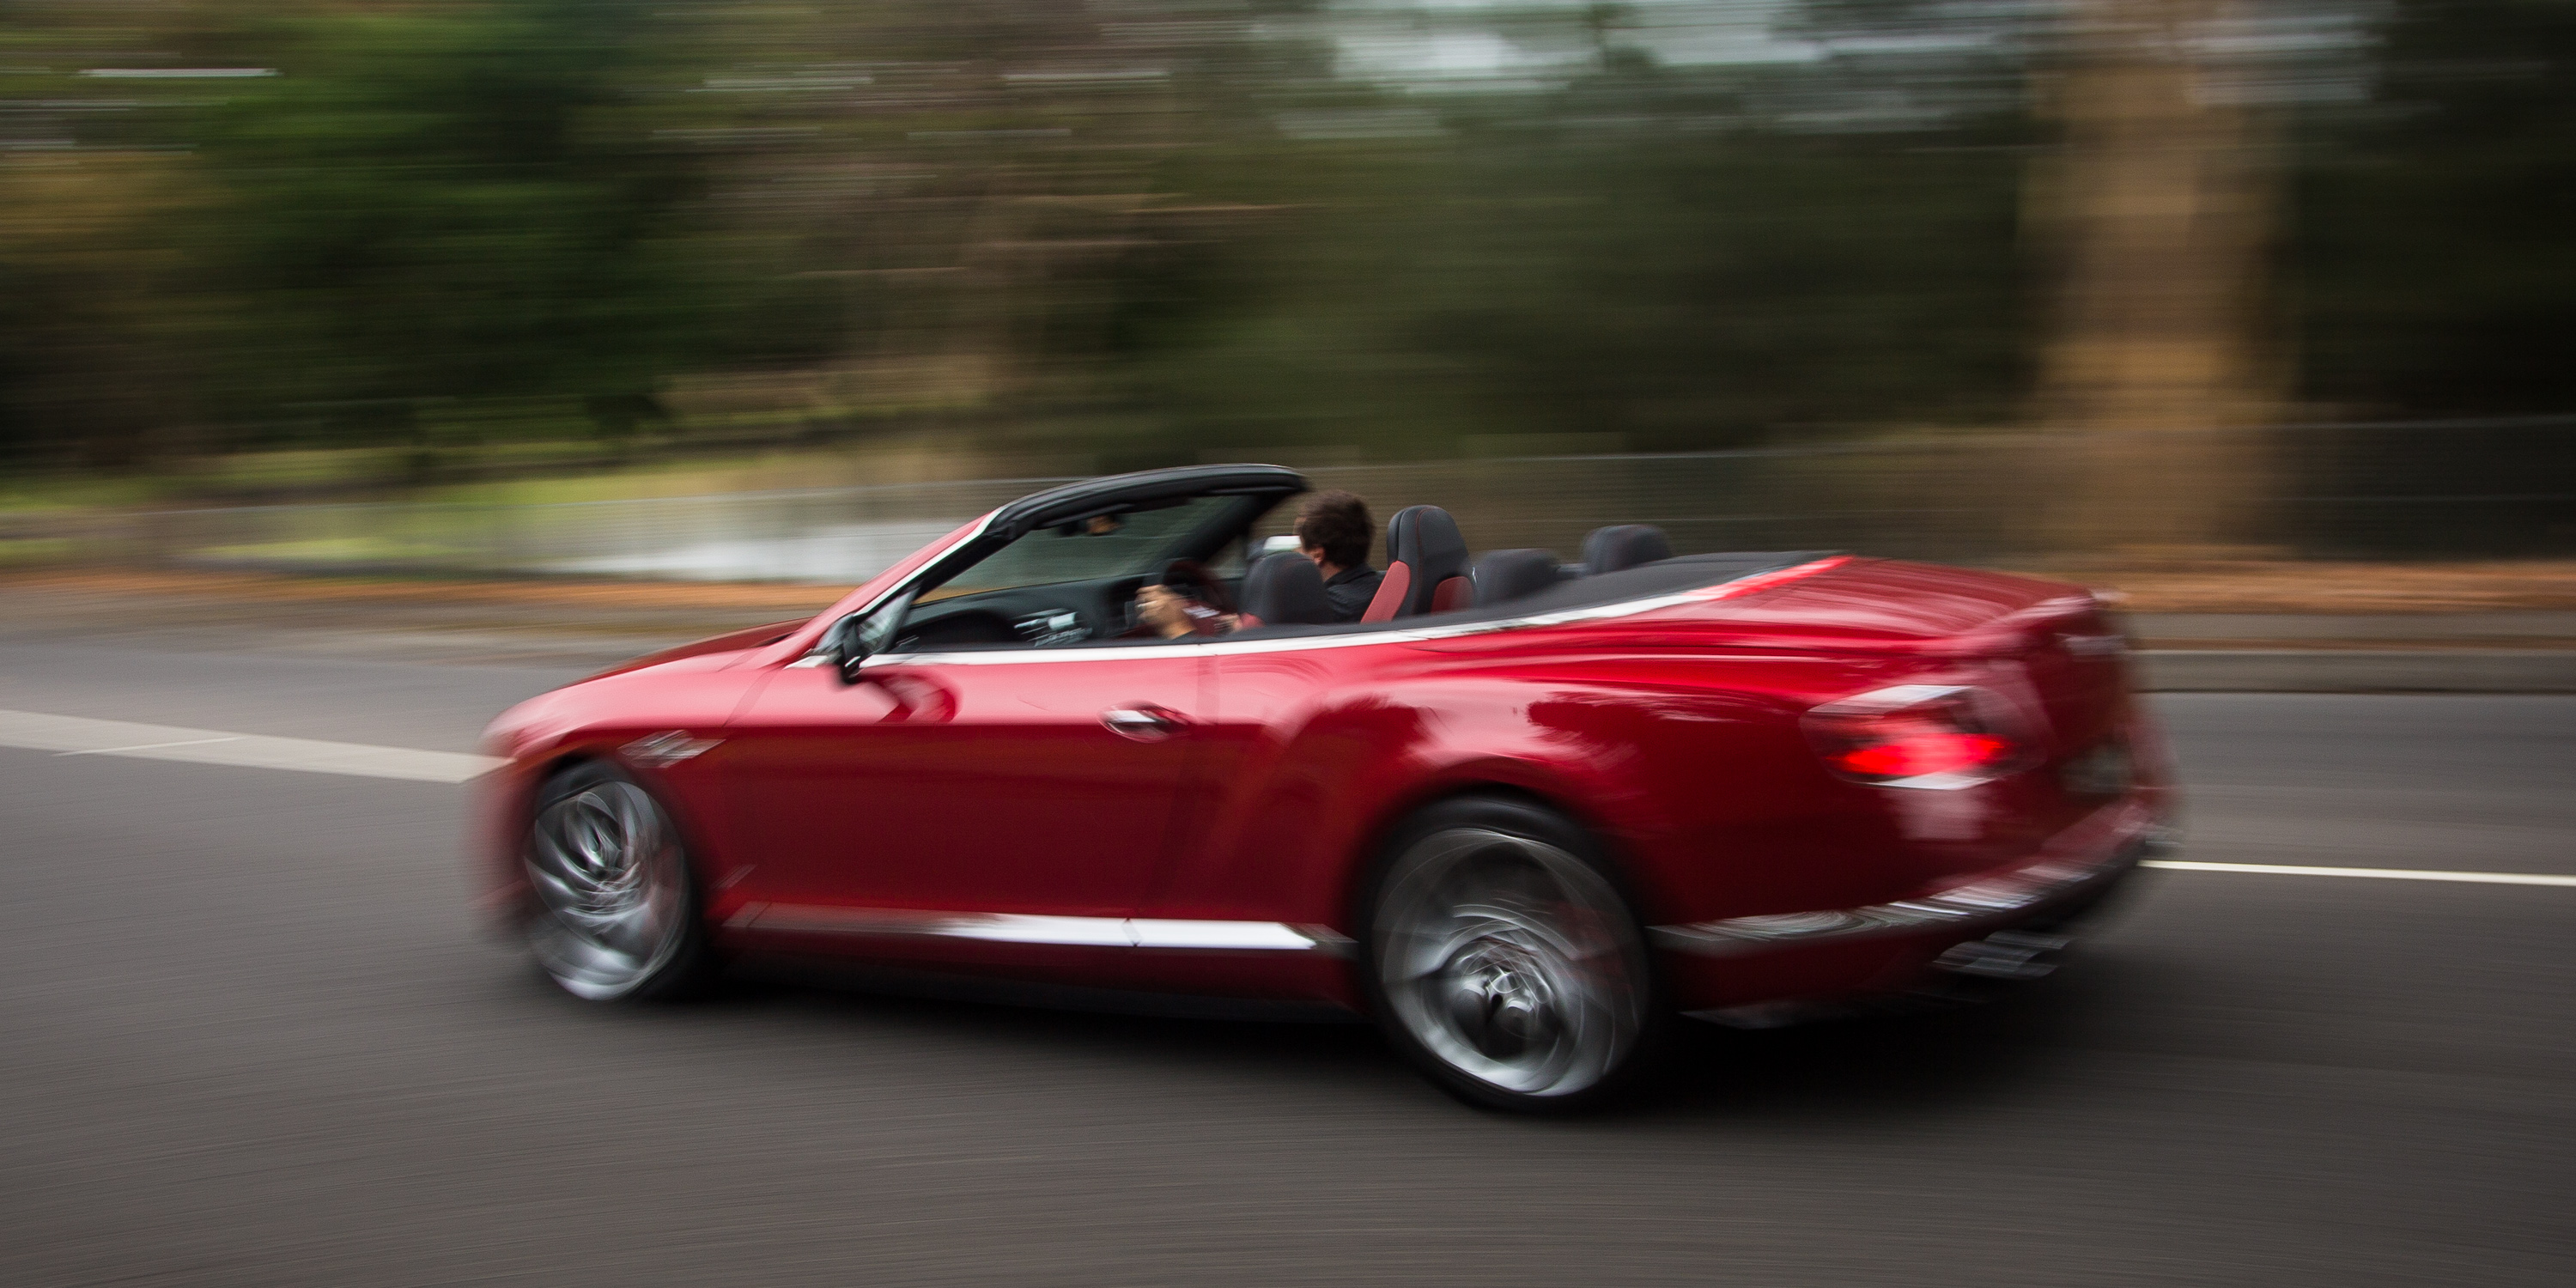 2017 Bentley Continental GT V8 S Convertible photo - 4